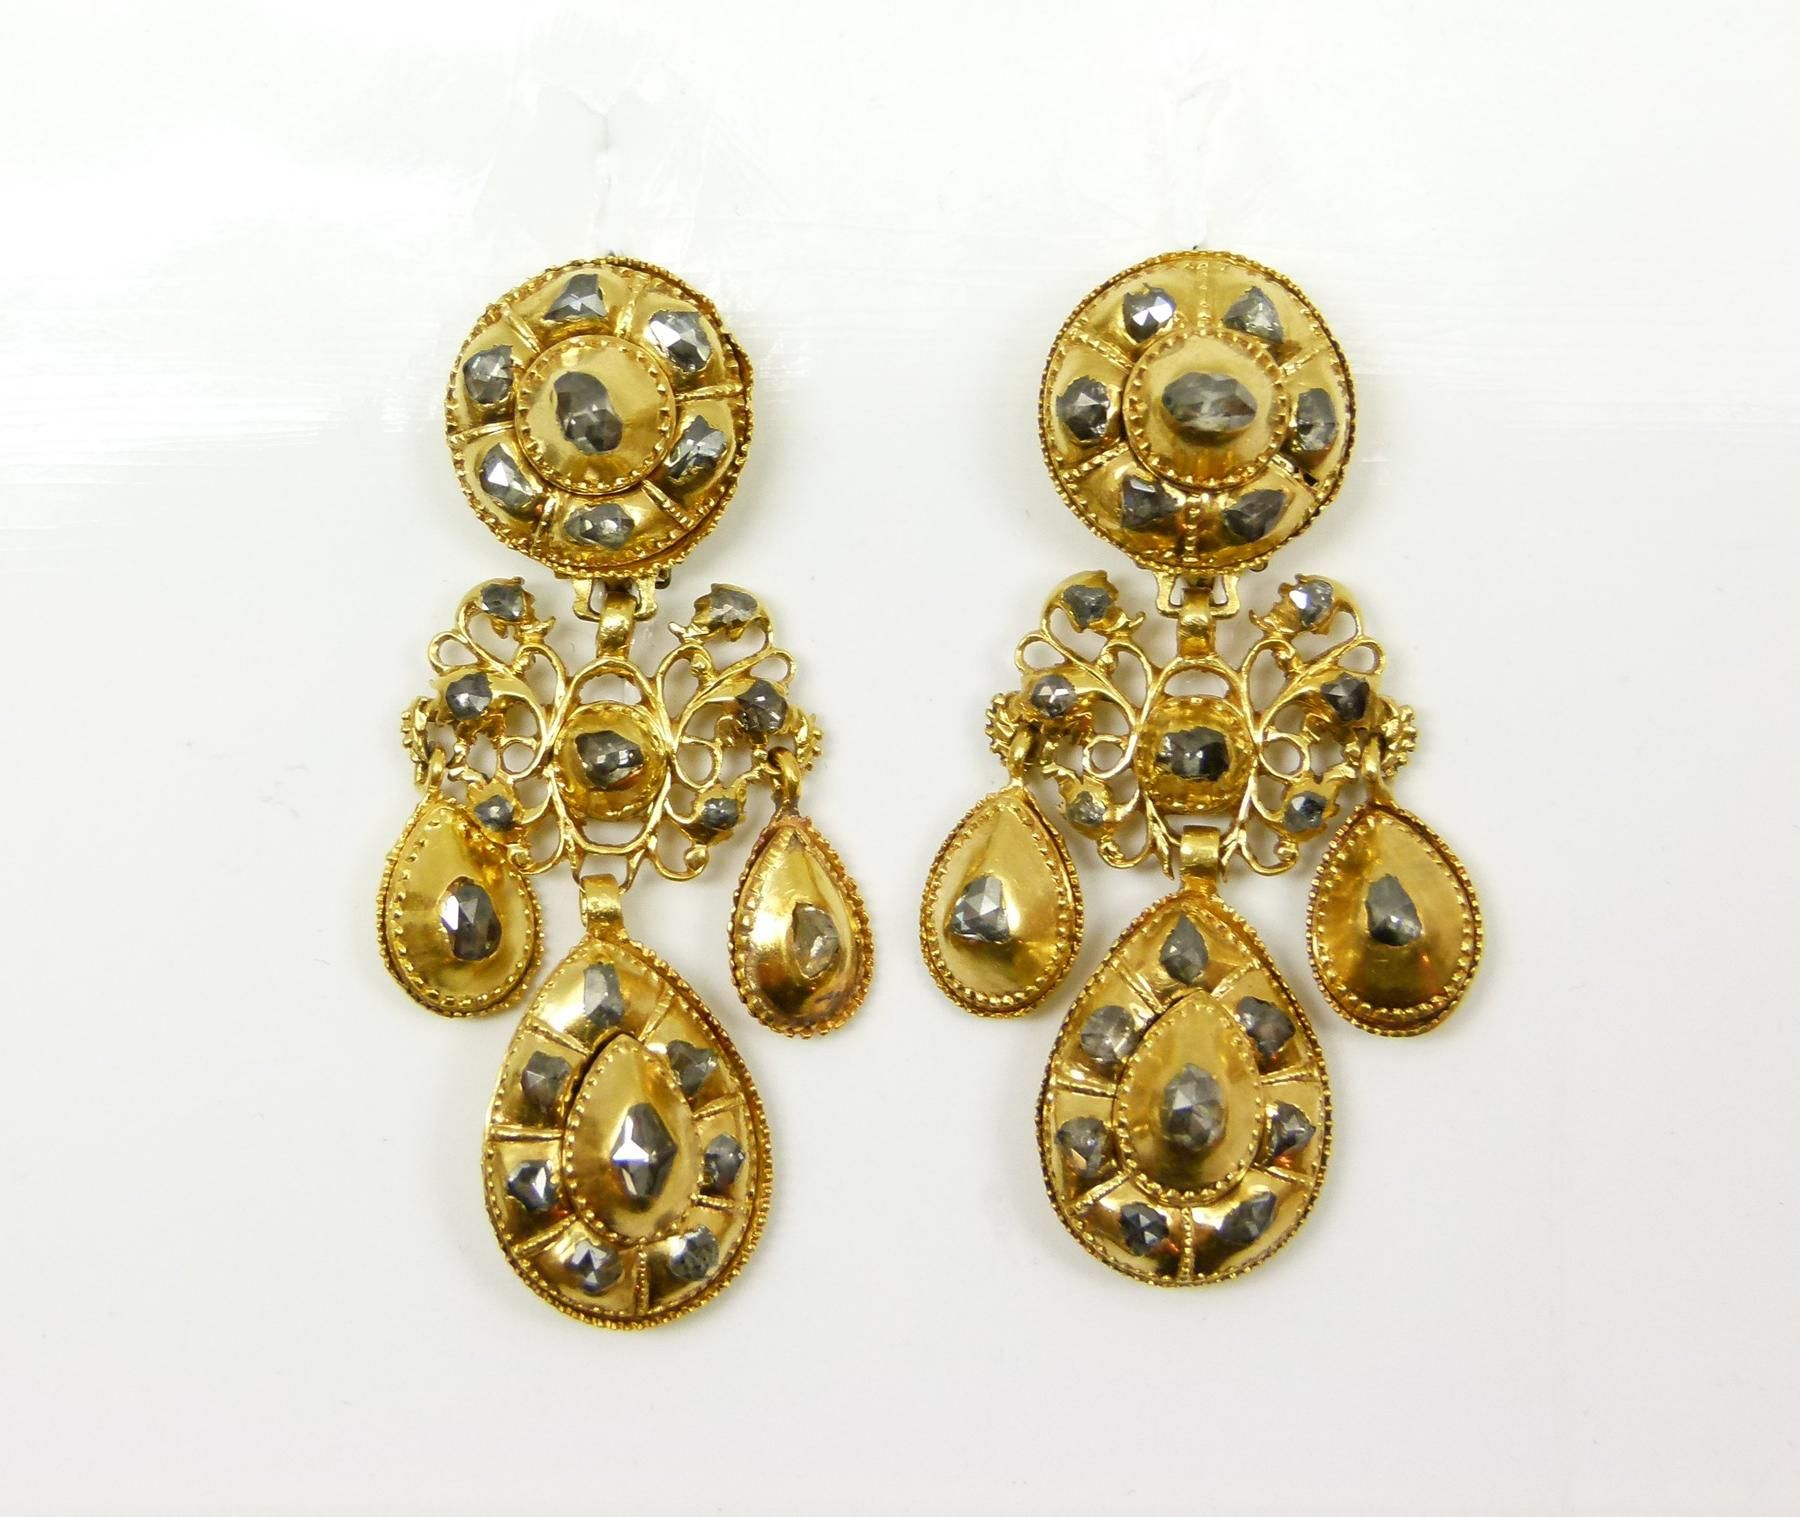 Pair of 17th century rose cut diamond and gold triple drop pendant earrings, Portuguese, c.1680, with graduated stepped cluster drops from a small openwork diamond set cartouche, stepped round cluster tops, all close set in gold